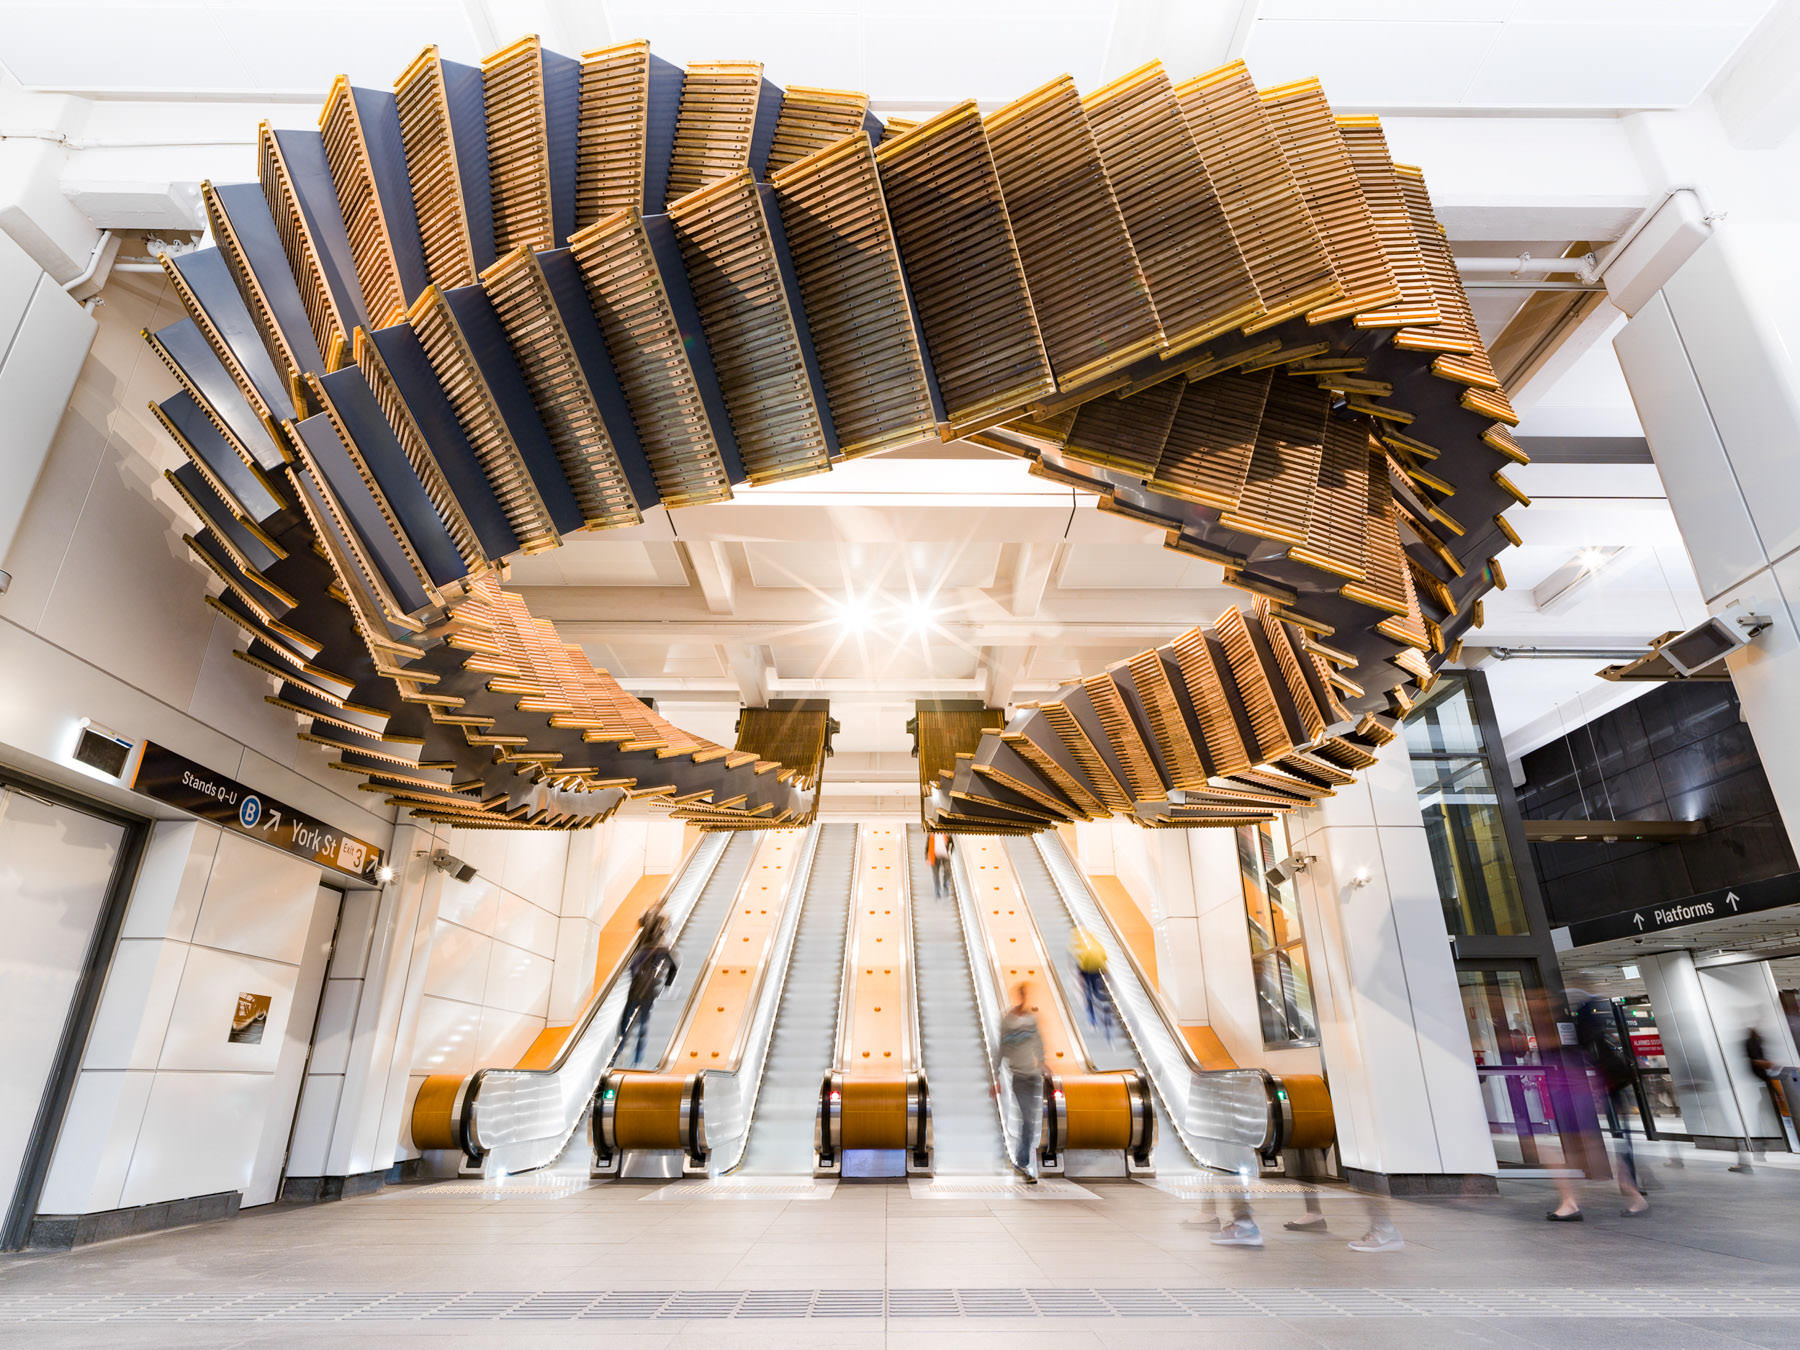 Incredible Sculptural Installation of the Old Wooden Escalators 1